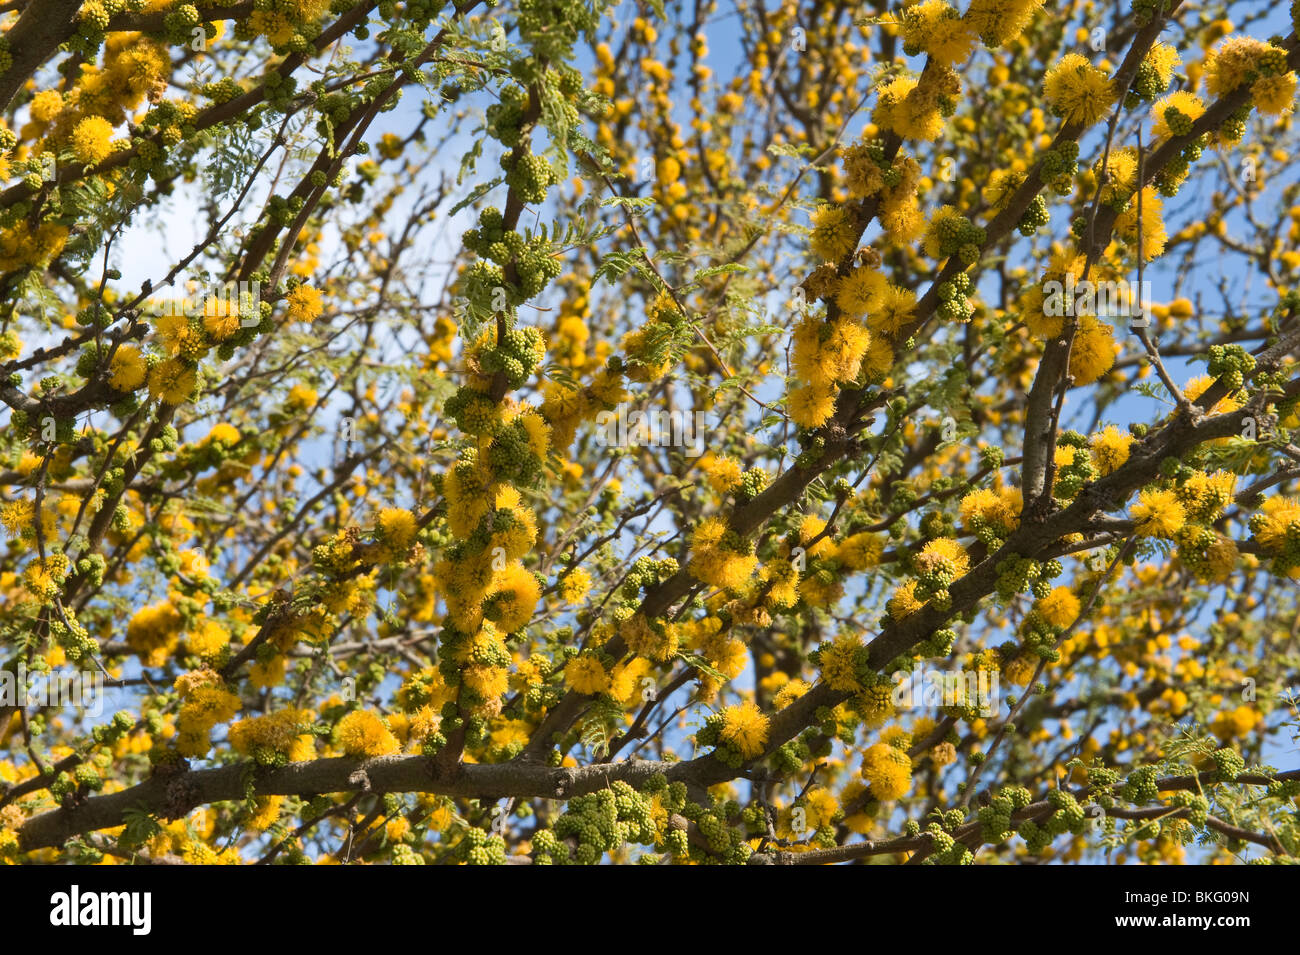 Flowering Tree With Yellow Flowers Spring Barcelona Spain Europe